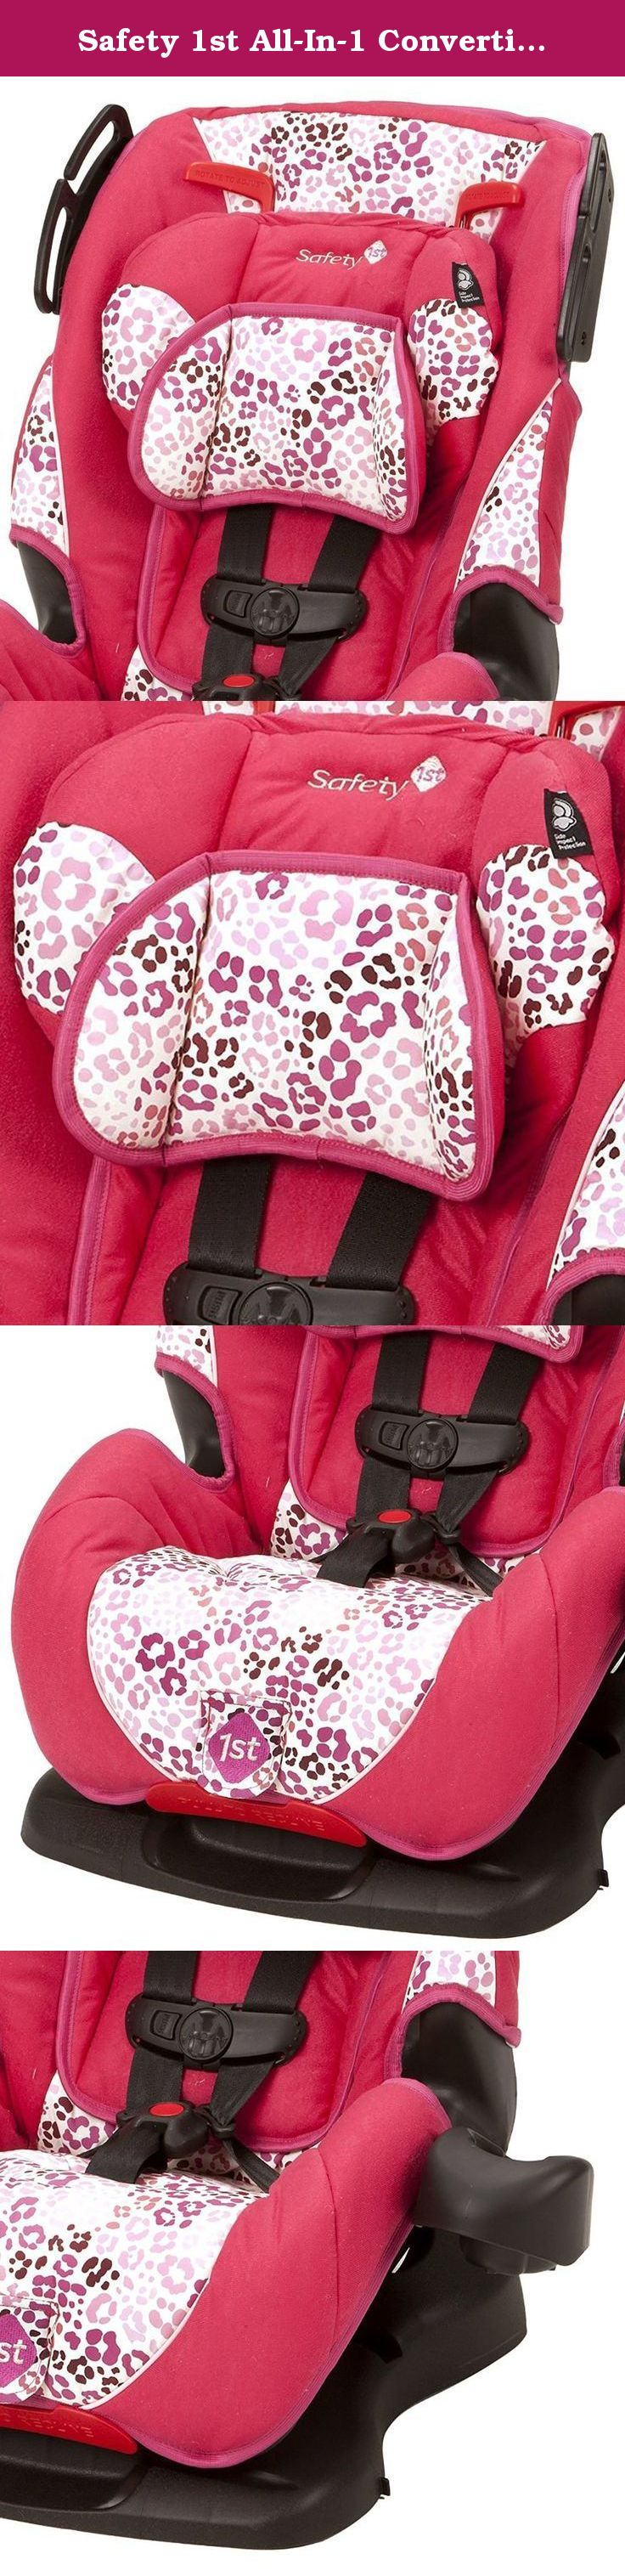 Safety 1st All-In-1 Convertible Multi-Position Car Seat, Ruby ...